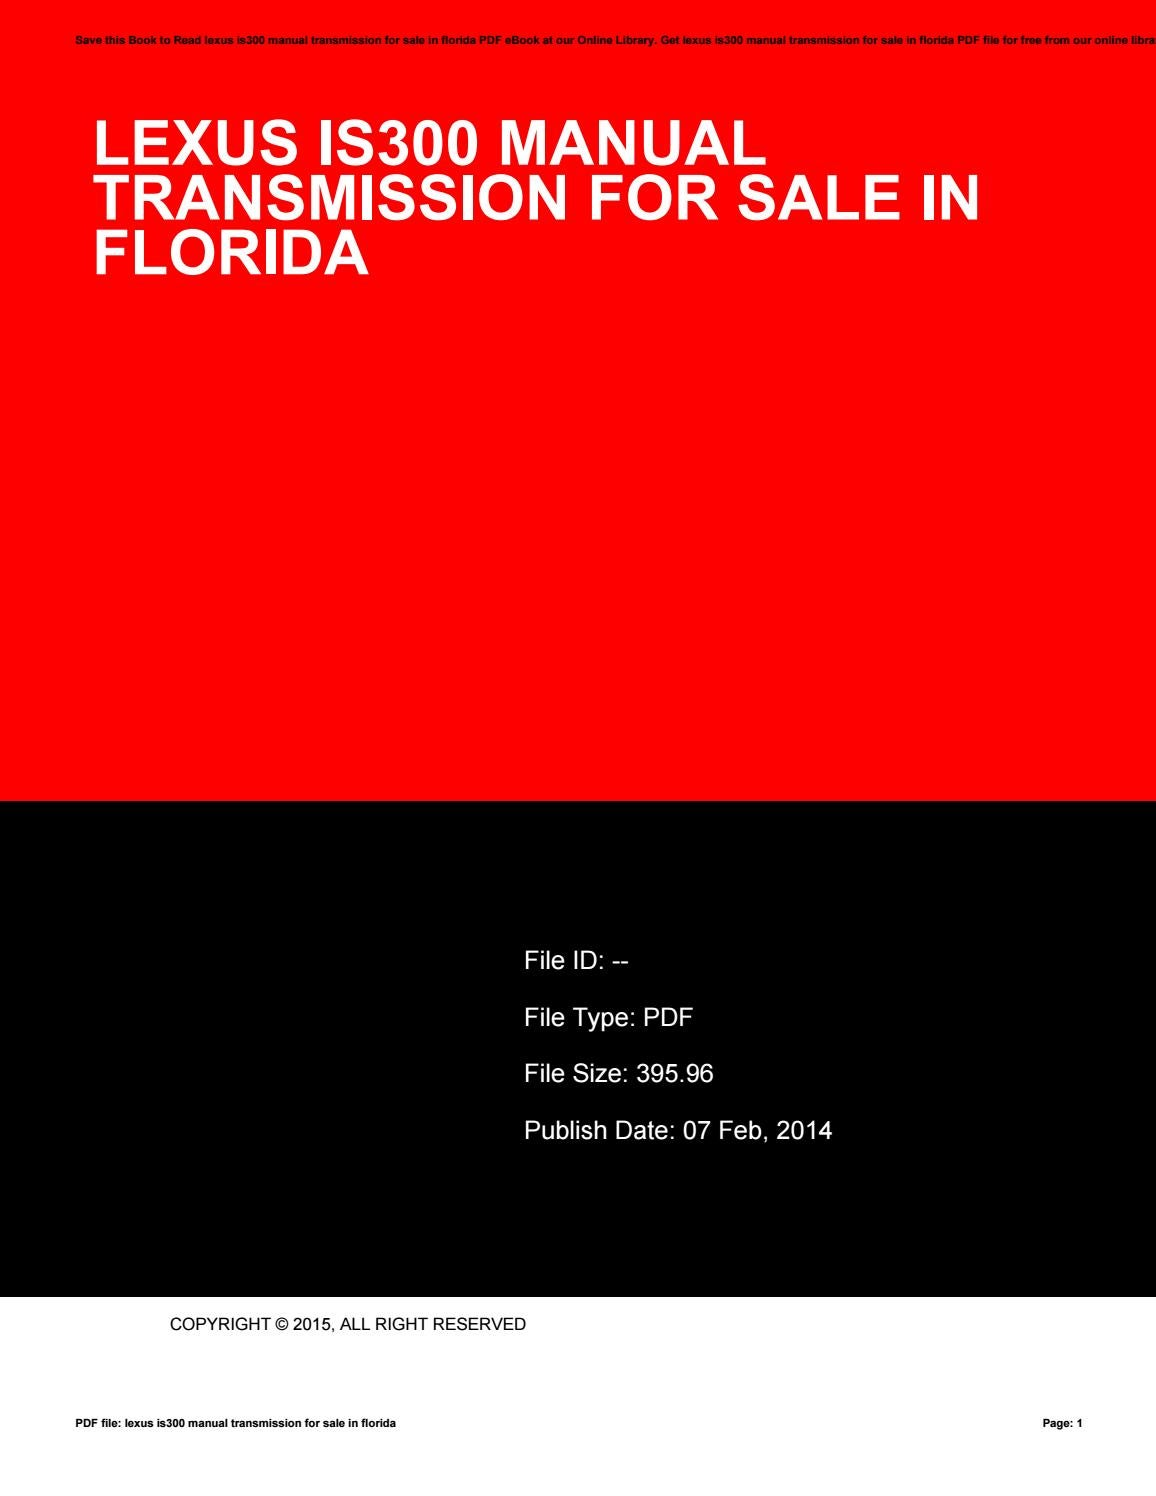 Lexus is300 manual transmission for sale in florida by BrianGonzalez4495 -  issuu